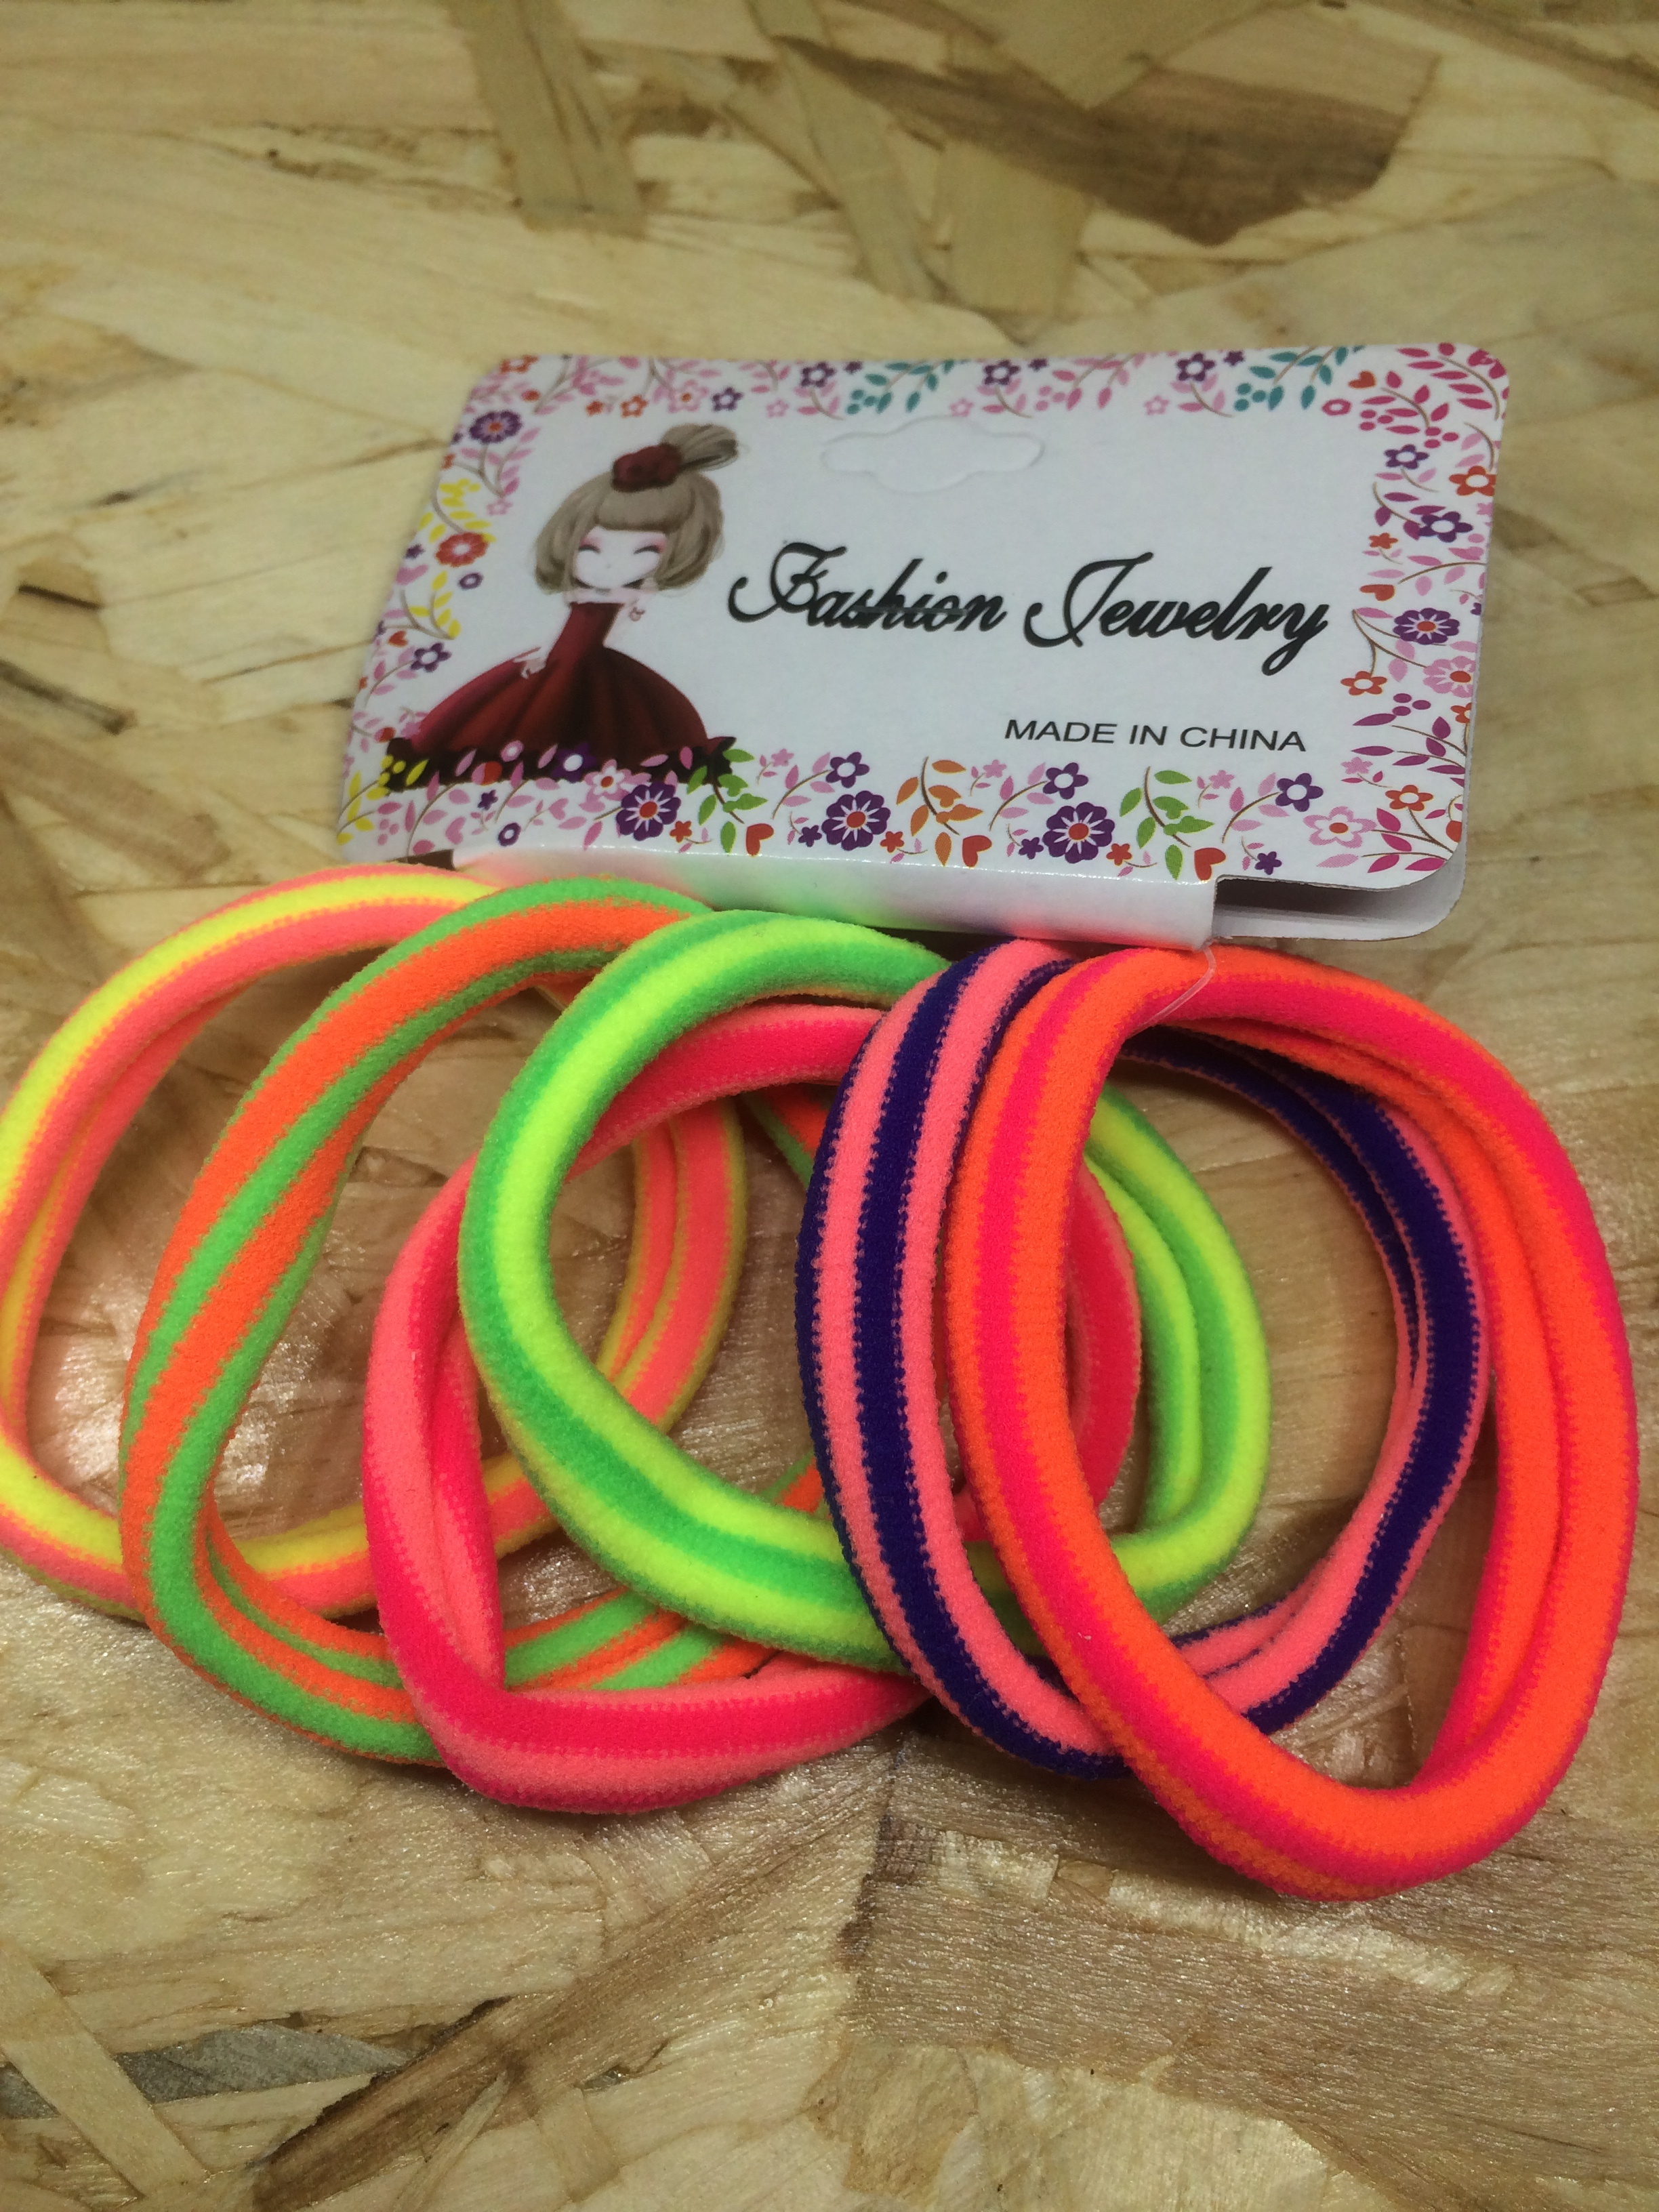 FLORESCENT LIGHT COLOR PONYTAIL RUBBER BAND HOLDER - Fashionoor